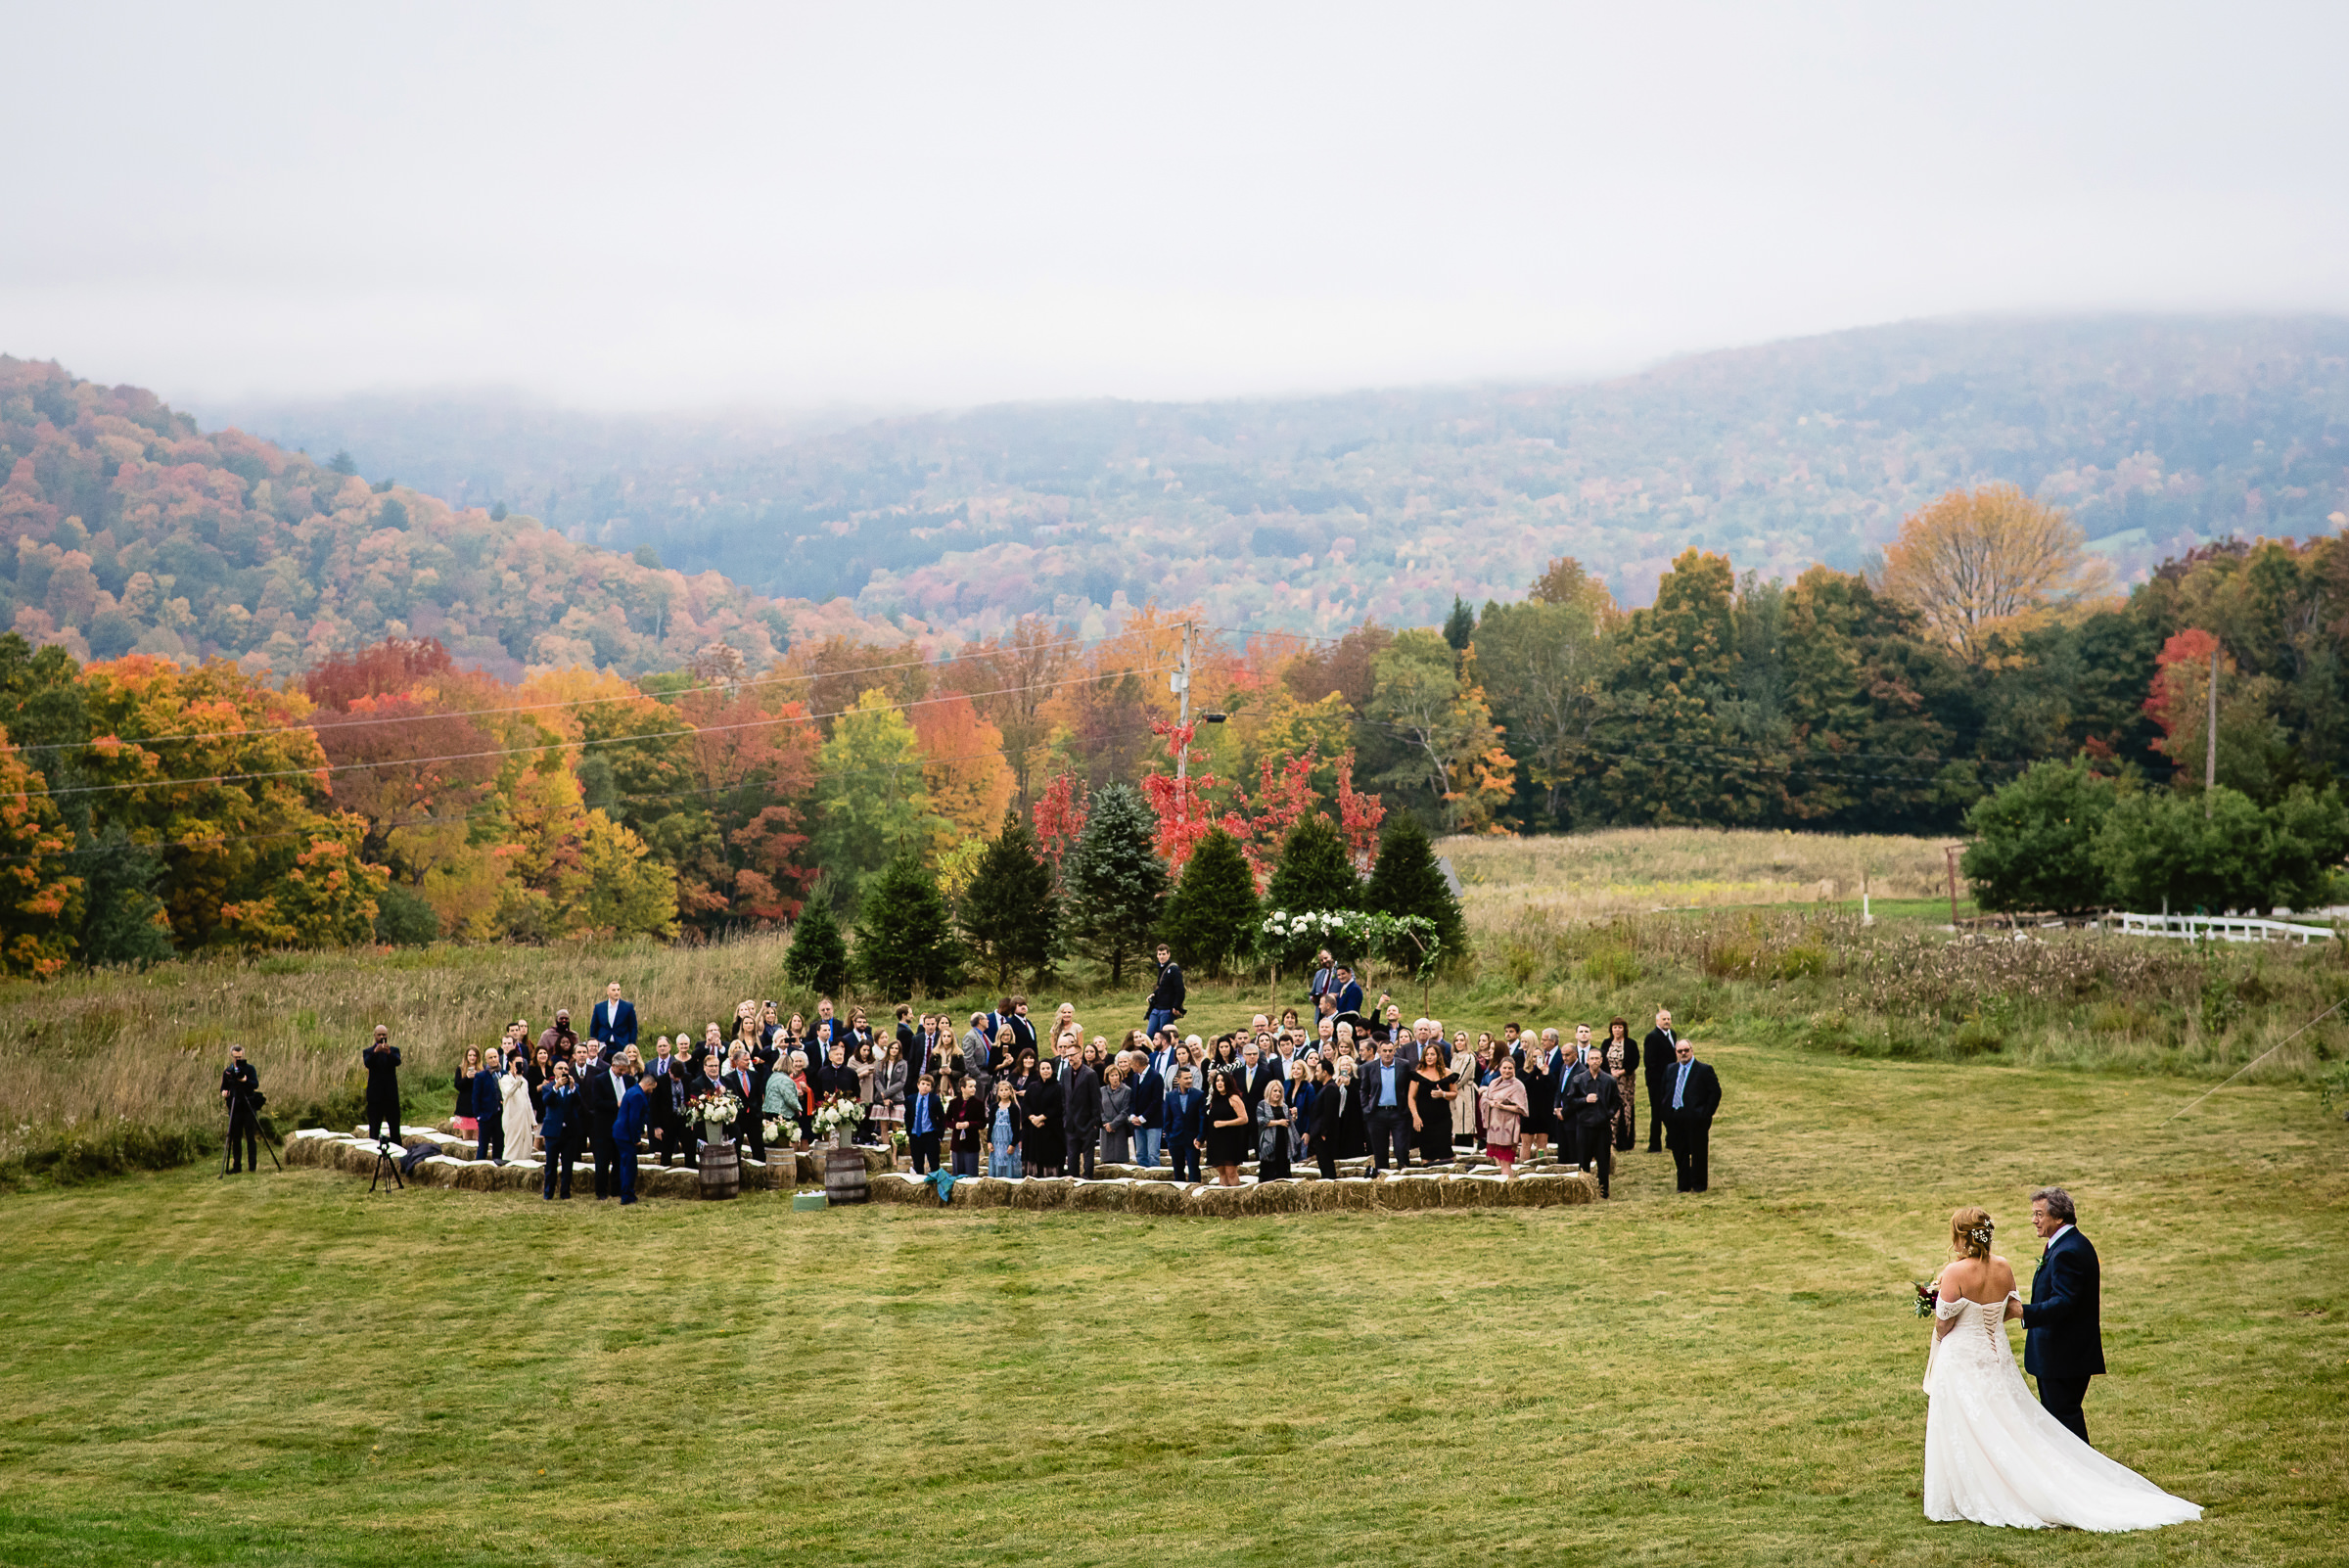 dad getting ready to walk bride down the aisle in the colorful fall mountains- photo by Hannah Photography